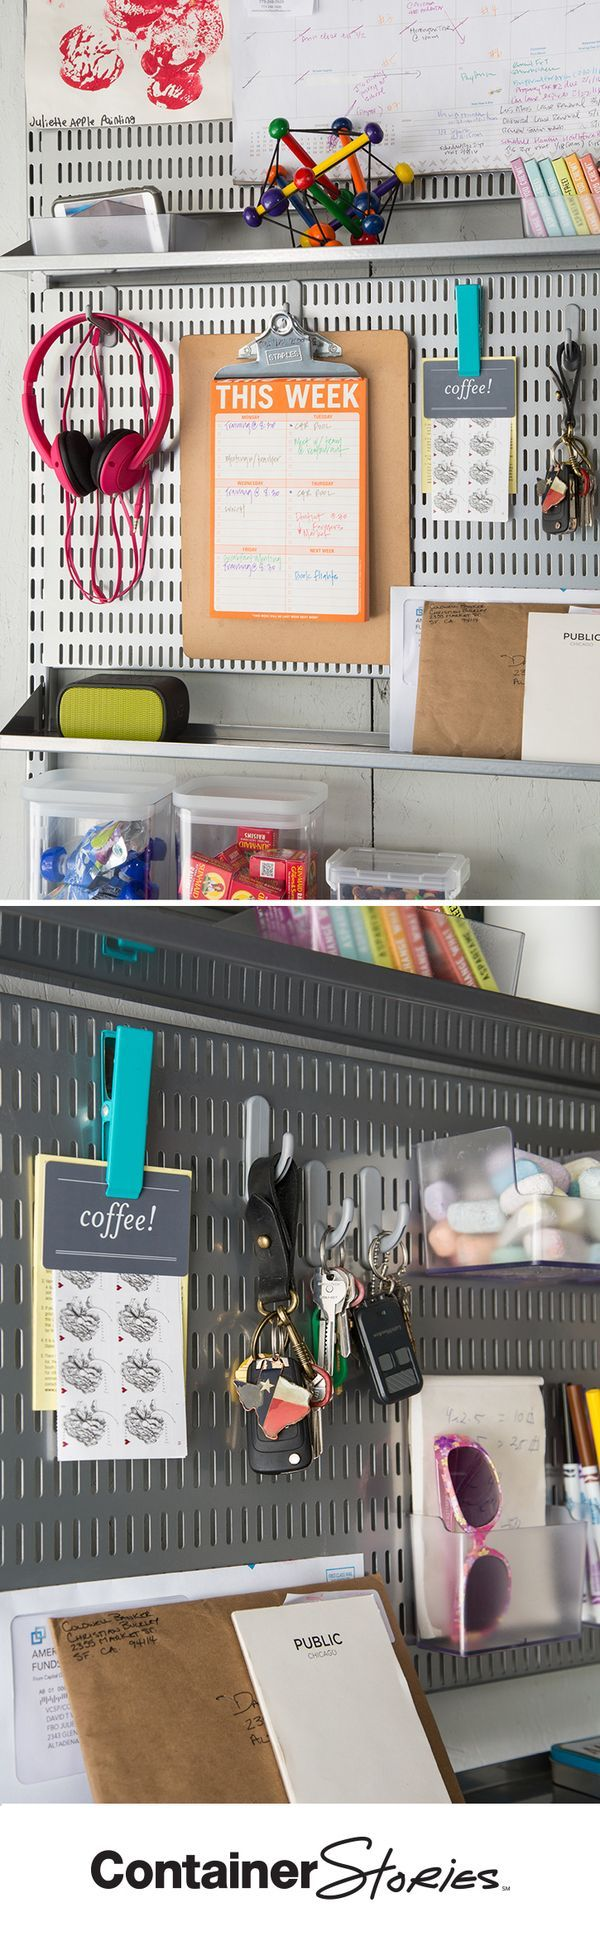 See how elfa turned this closet into Grand Central Organization! elfa utility Boards were put to great use in this solution. Keys, to-do lists, notepads and even mailing supplies are always right where they should be.